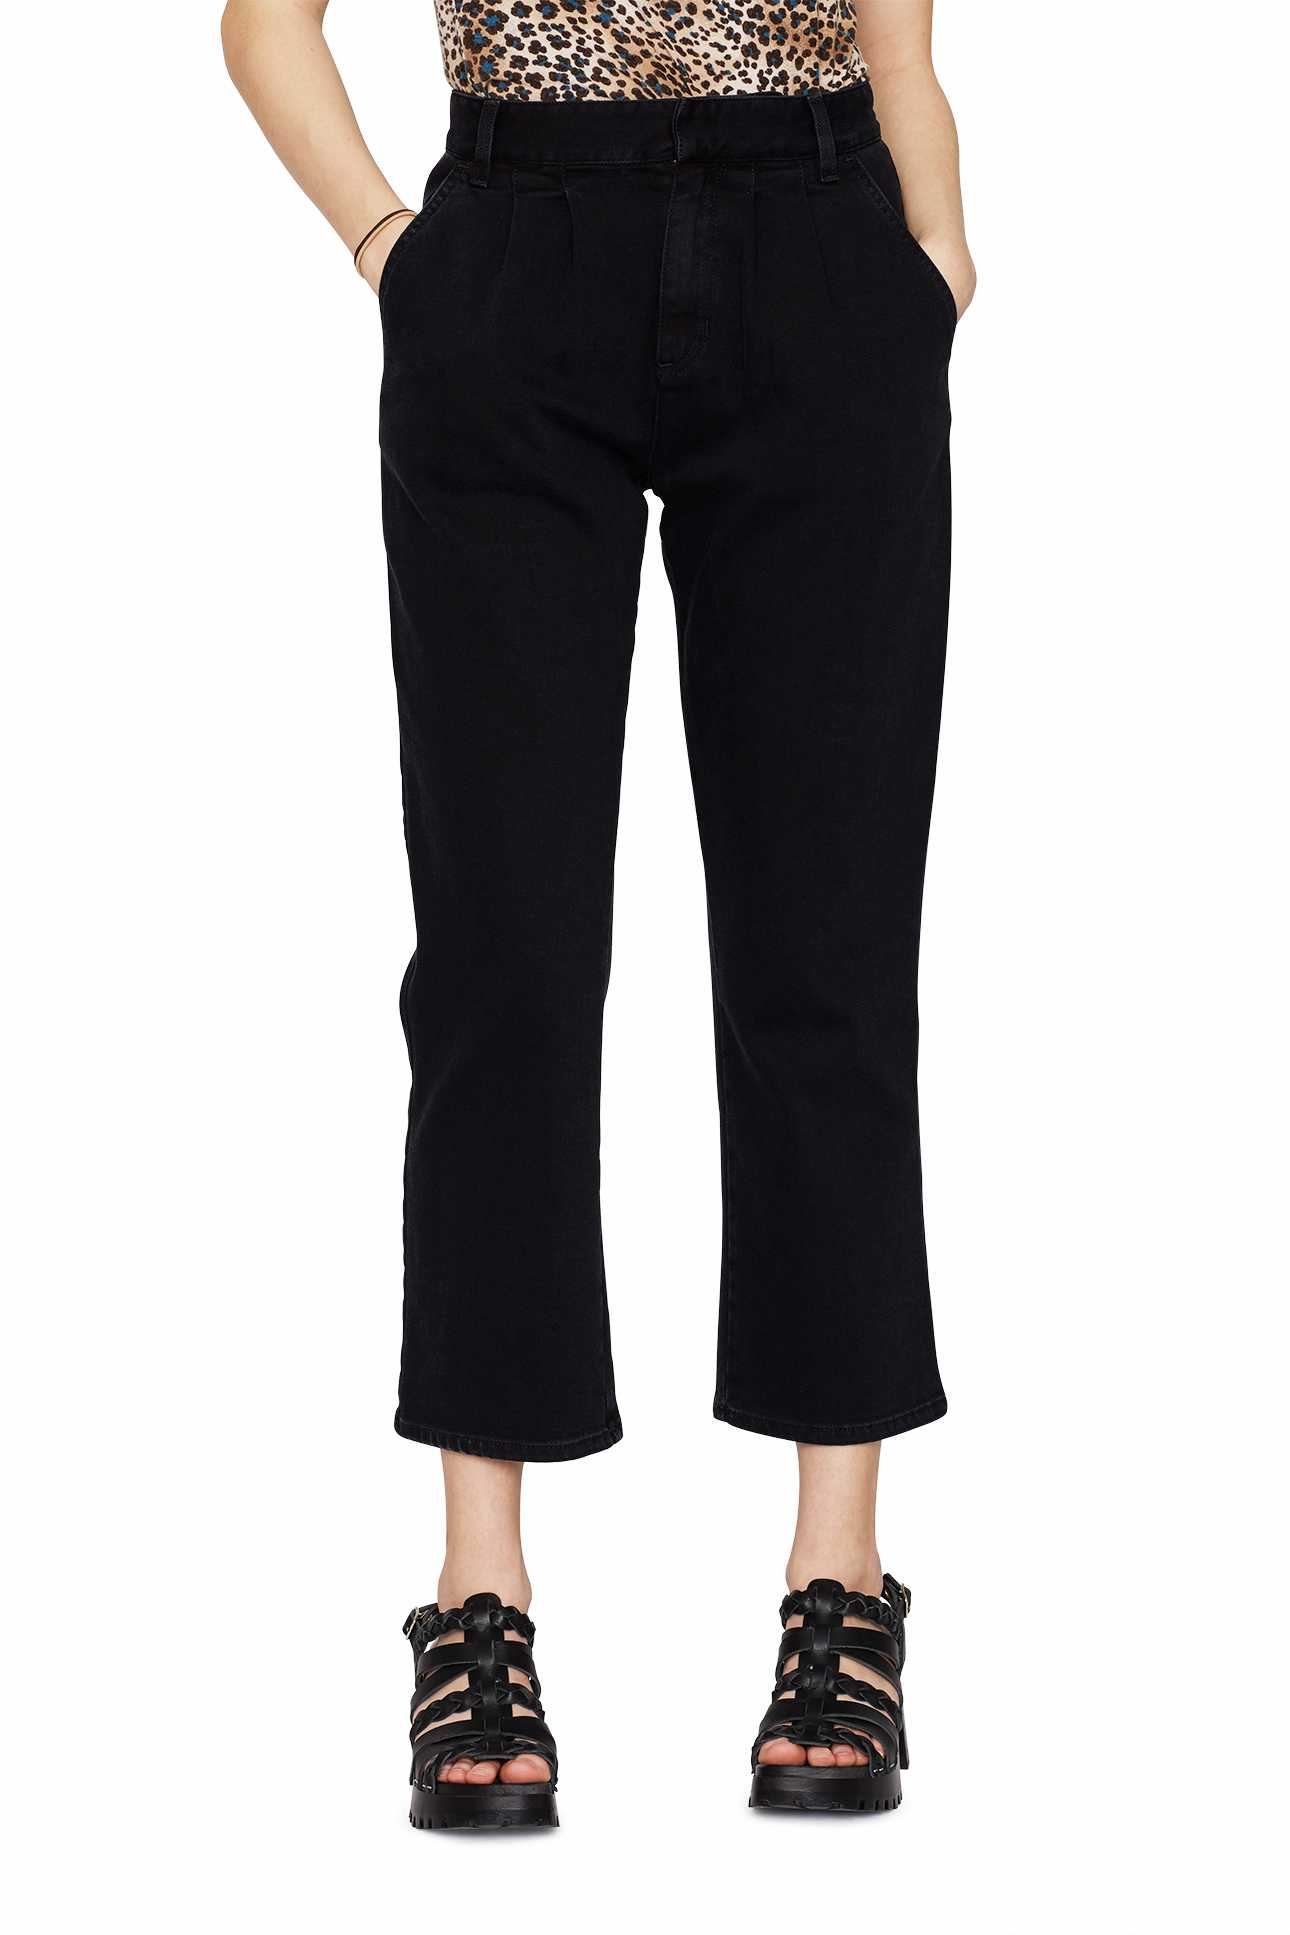 Pleat Pant Black Denim